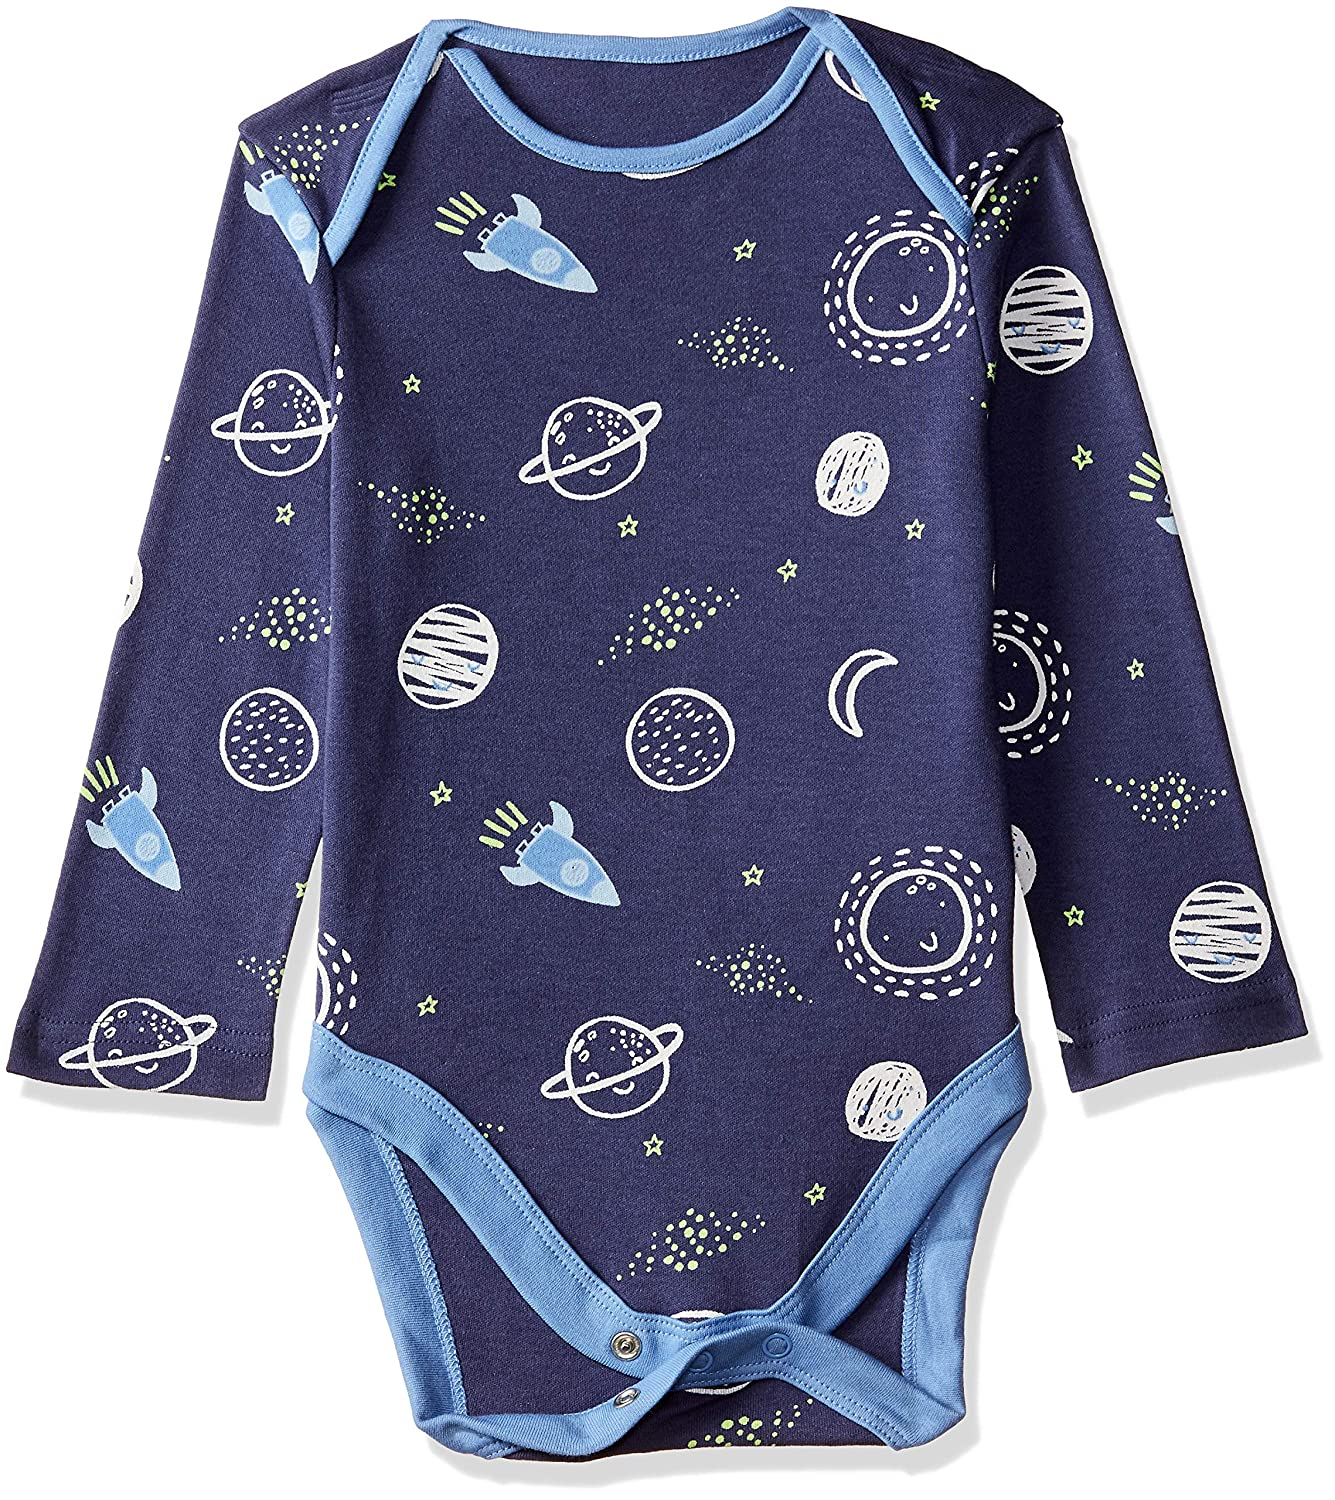 Mothercare Baby Boys 5 Pack Long Sleeve Mummy /& Daddy Bodysuits